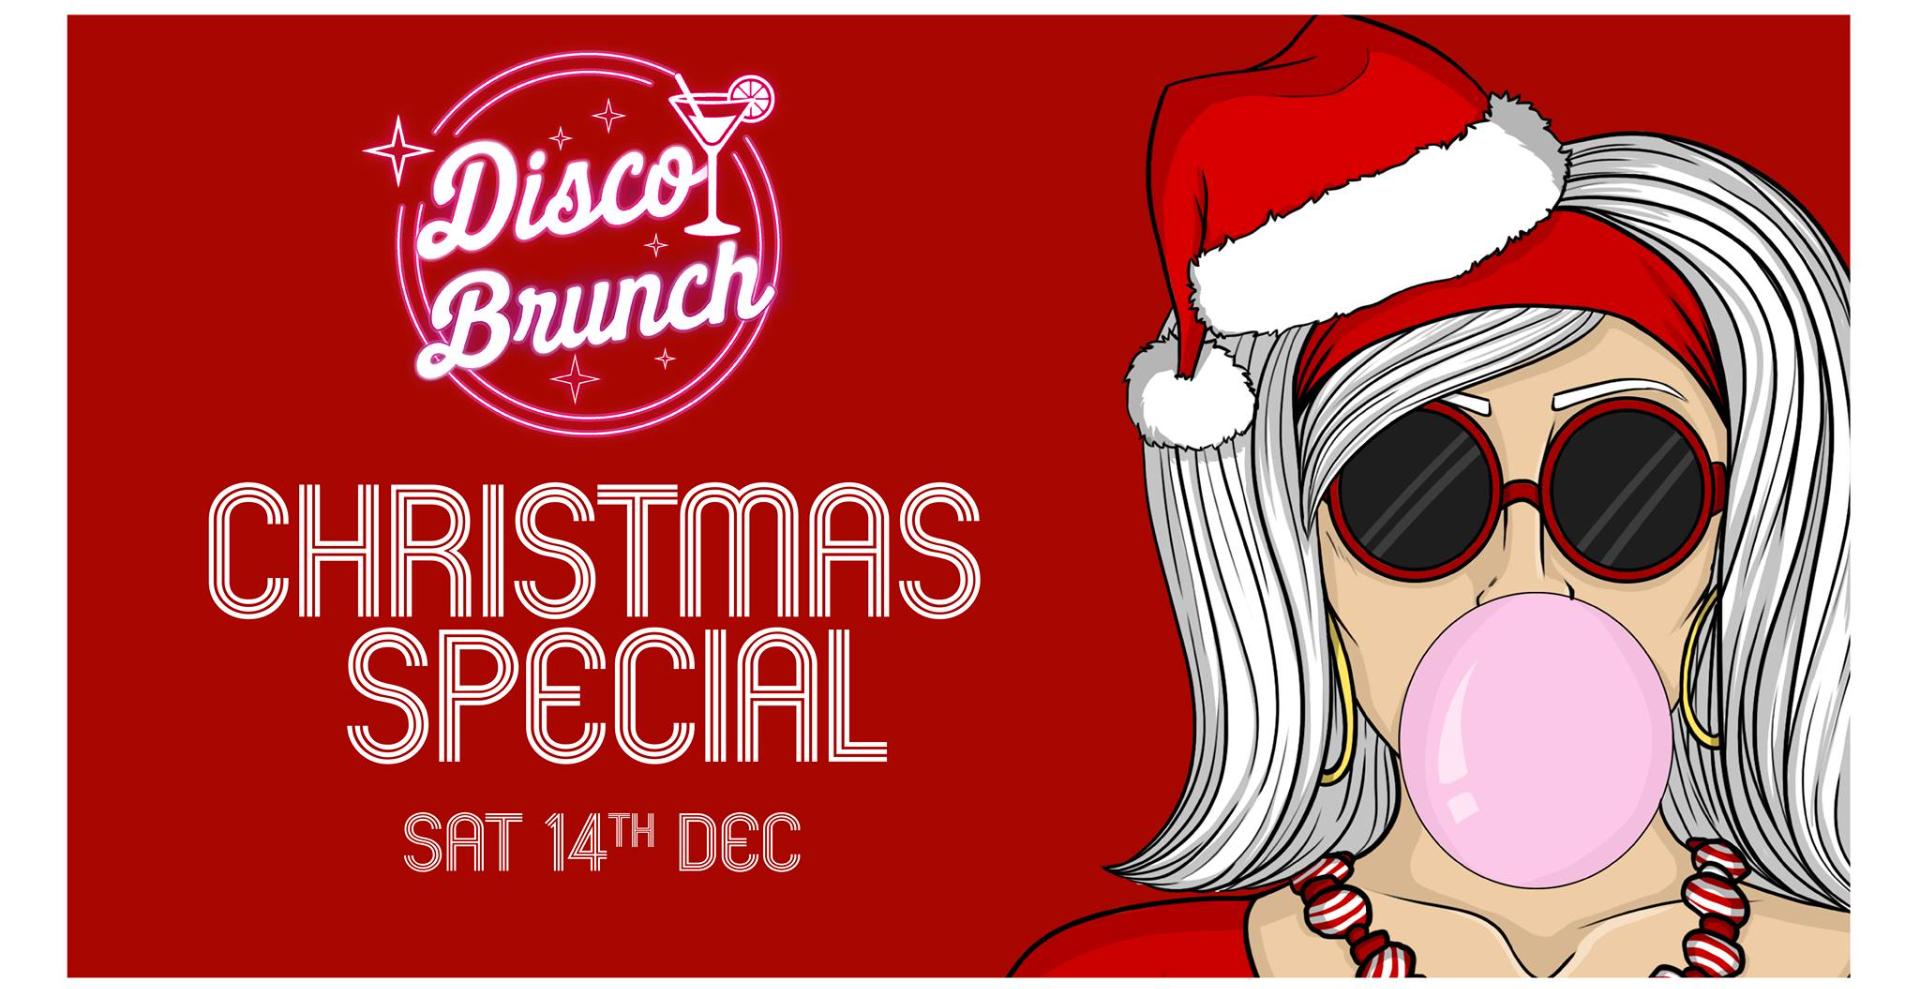 Disco Brunch 14th December - CHRISTMAS SPECIAL